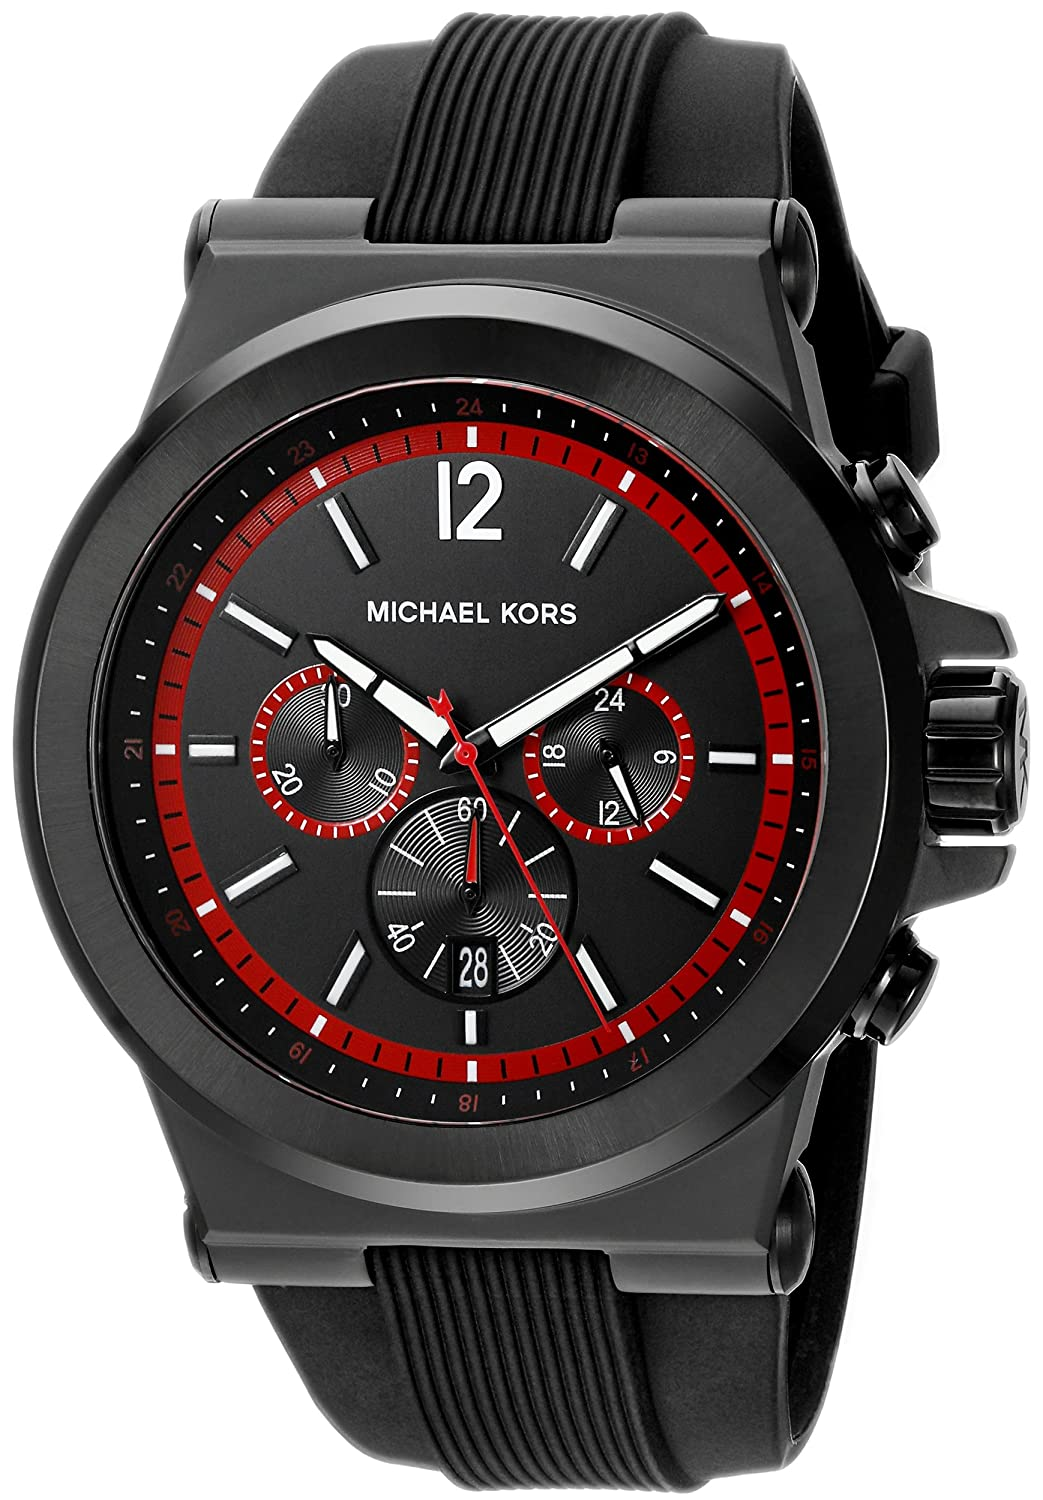 Amazon.com: Michael Kors Mens Dylan Black Watch MK8453: Watches